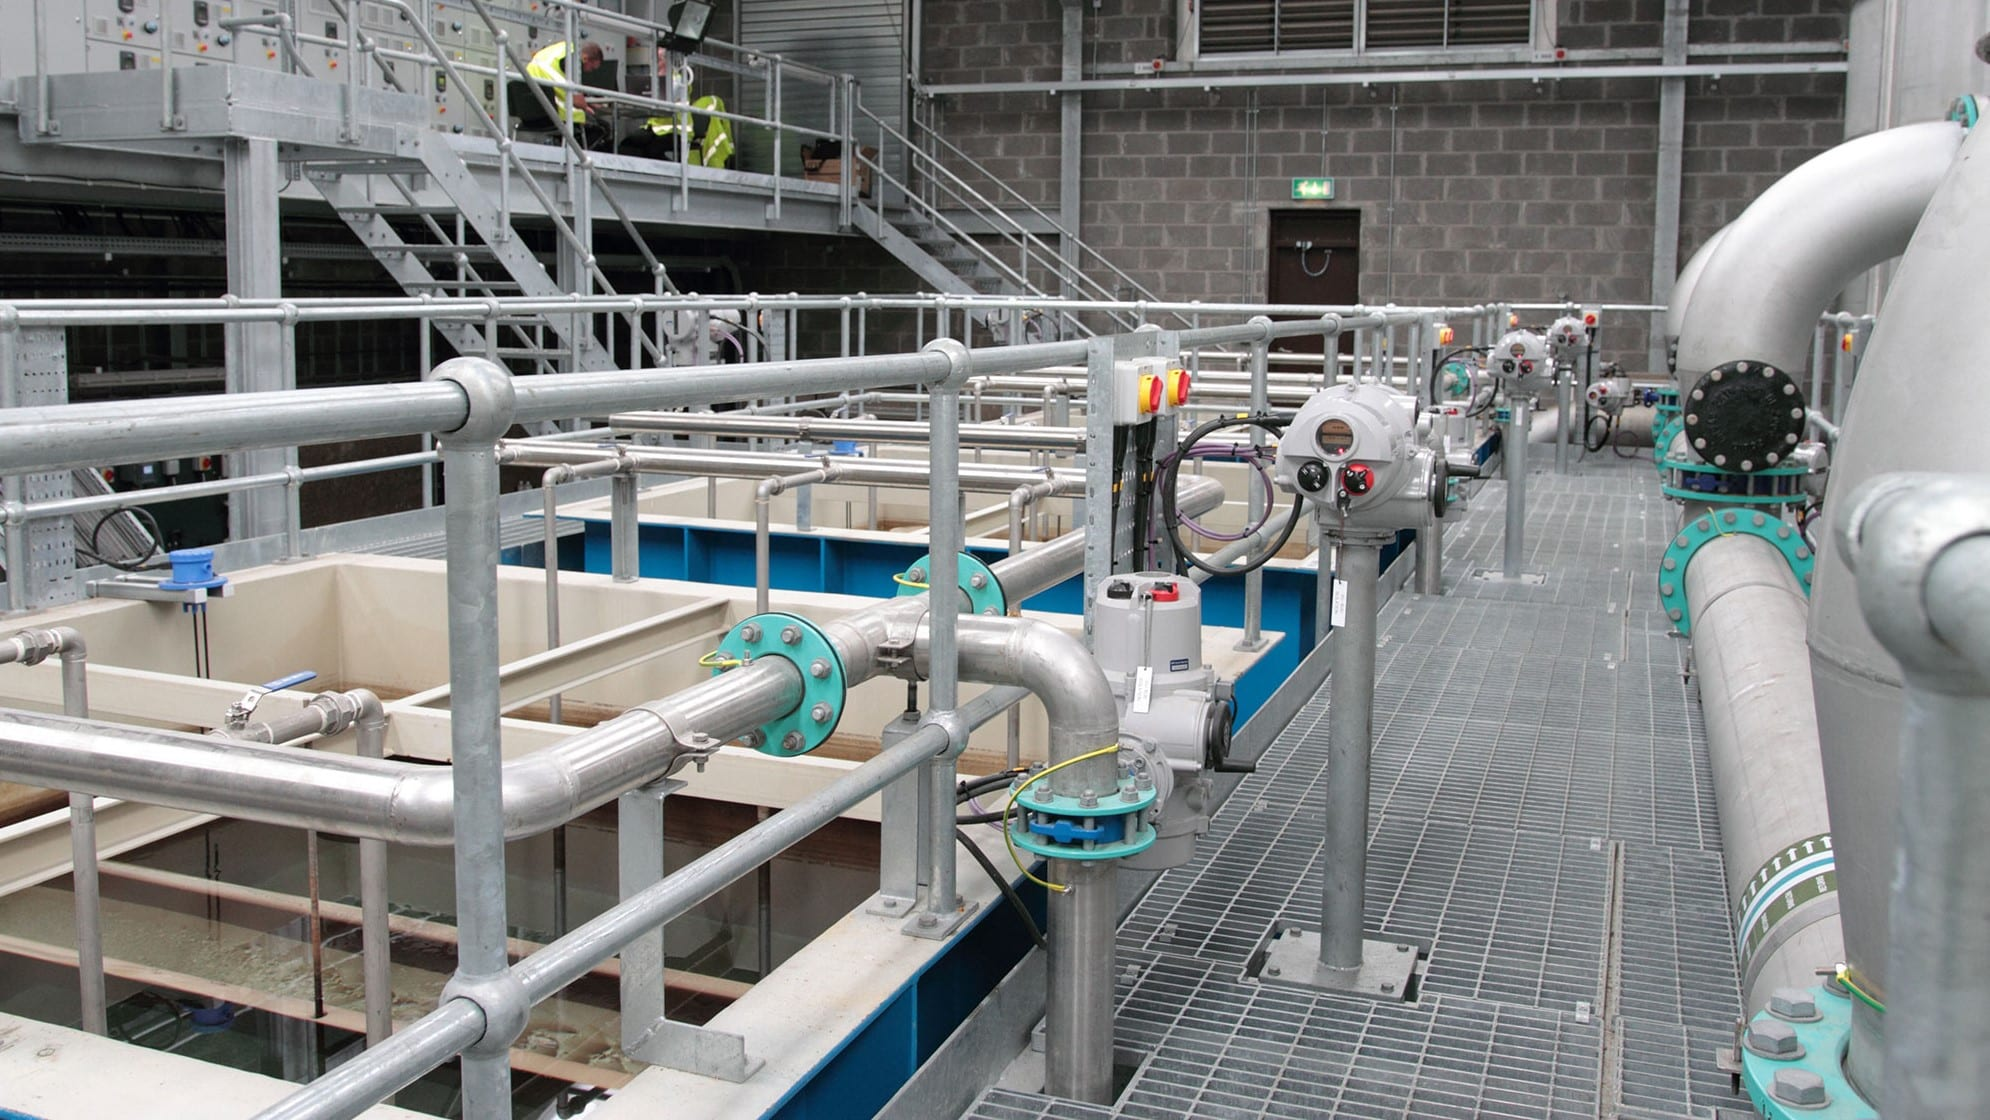 Pipework Image